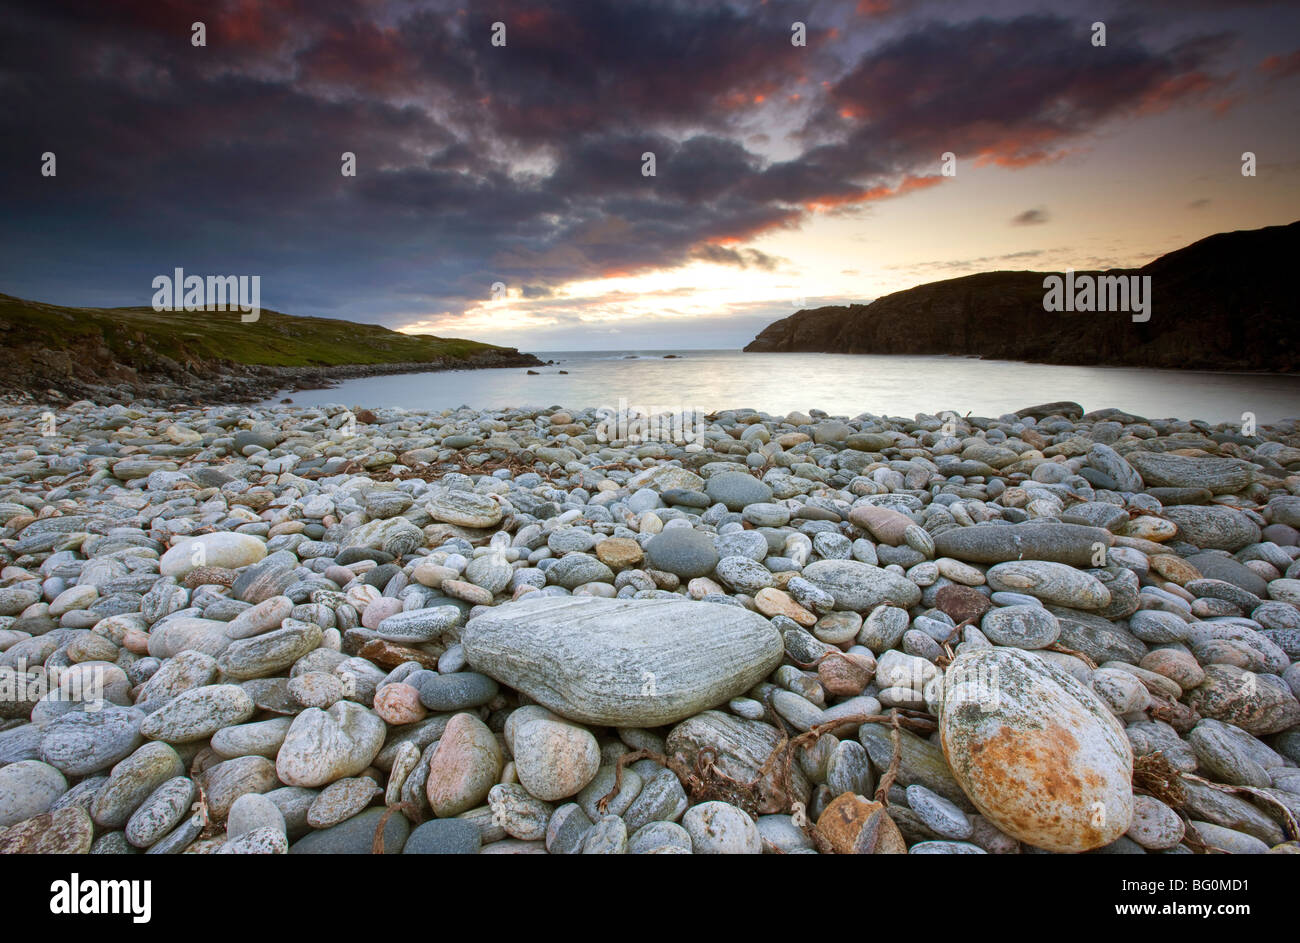 Looking out to sea at sunset across the rocky beach at Gearranin, Isle of Lewis, Outer Hebrides, Scotland, United - Stock Image